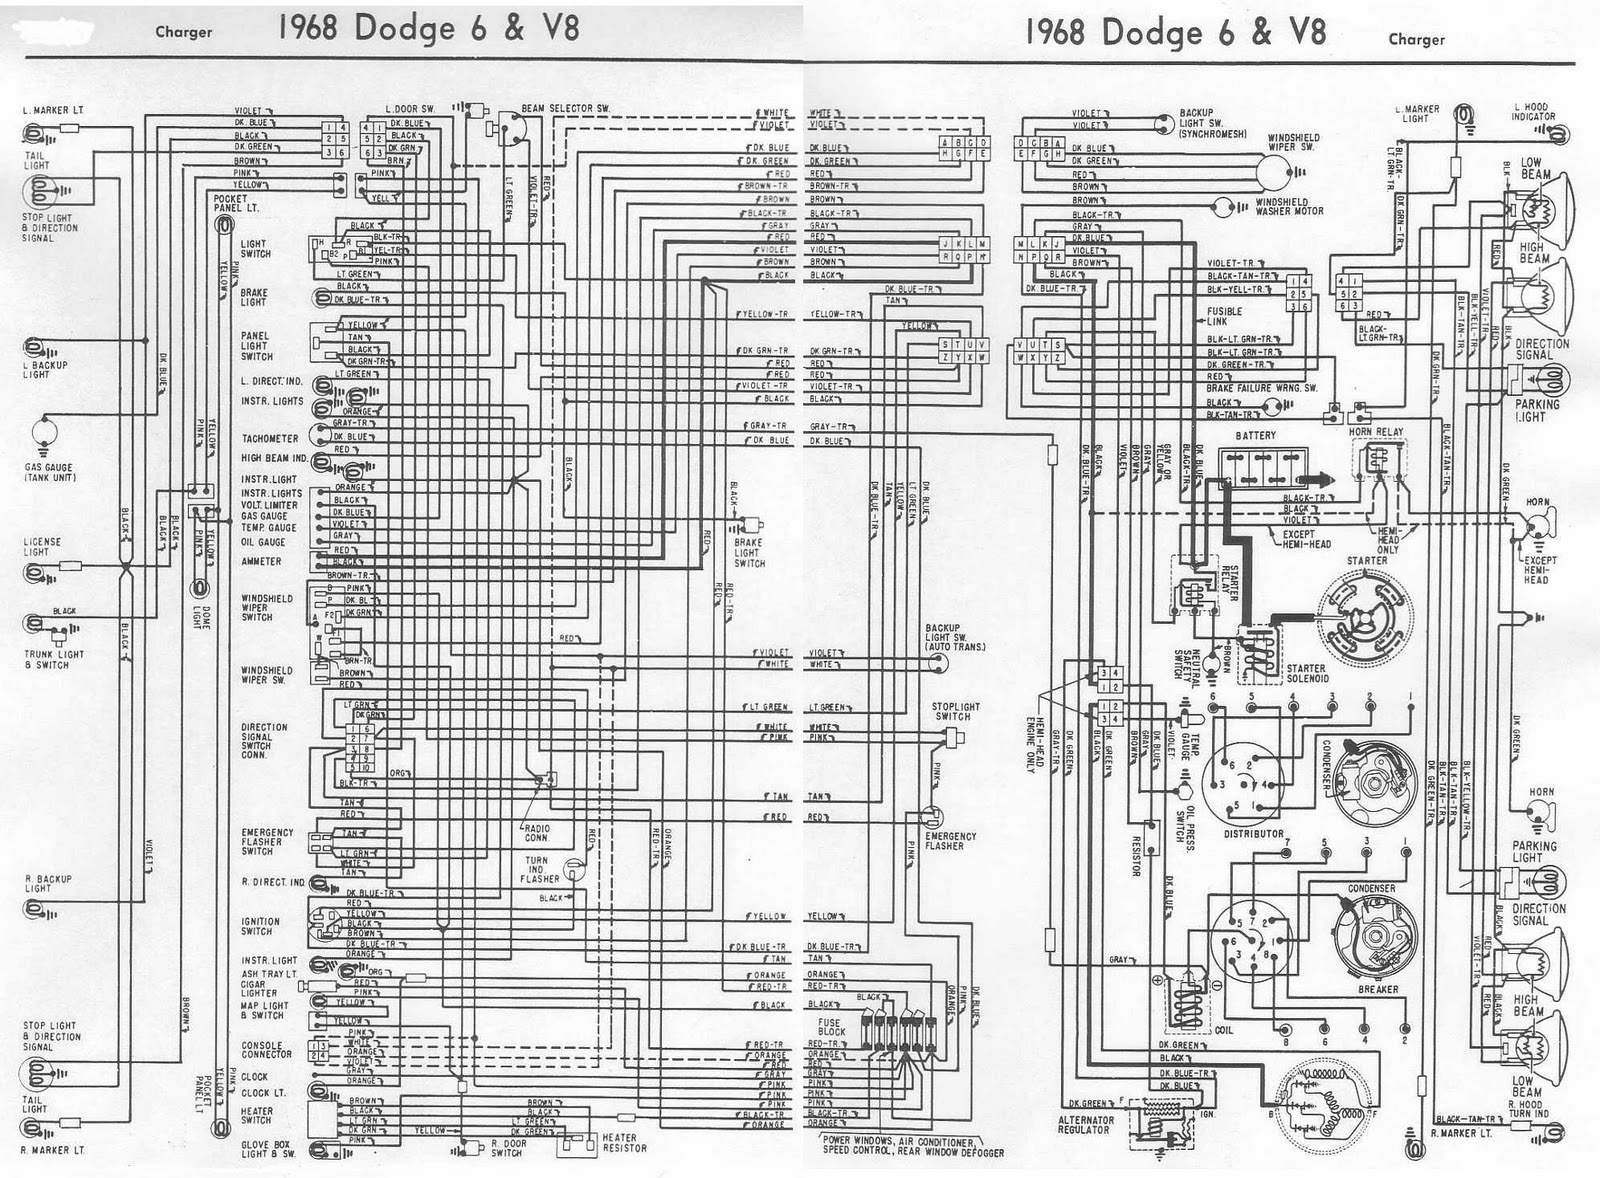 d wiring diagram wiring diagrams online dodge charger 1968 6 and v8 complete electrical wiring diagram